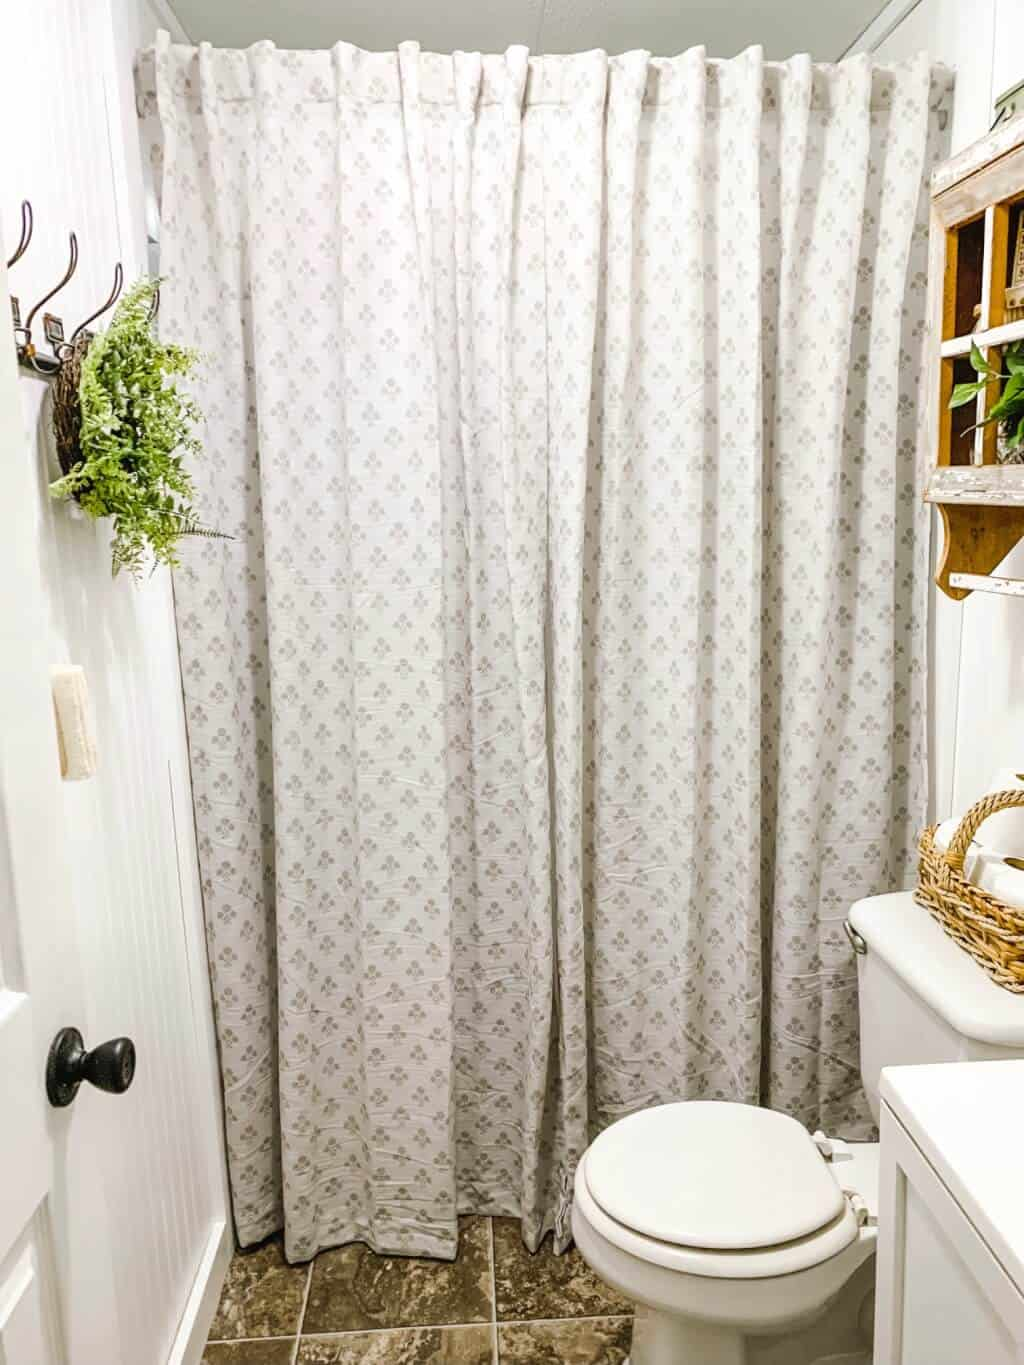 Tall shower curtain adds height for low ceilings - affordable farmhouse bathroom makeover